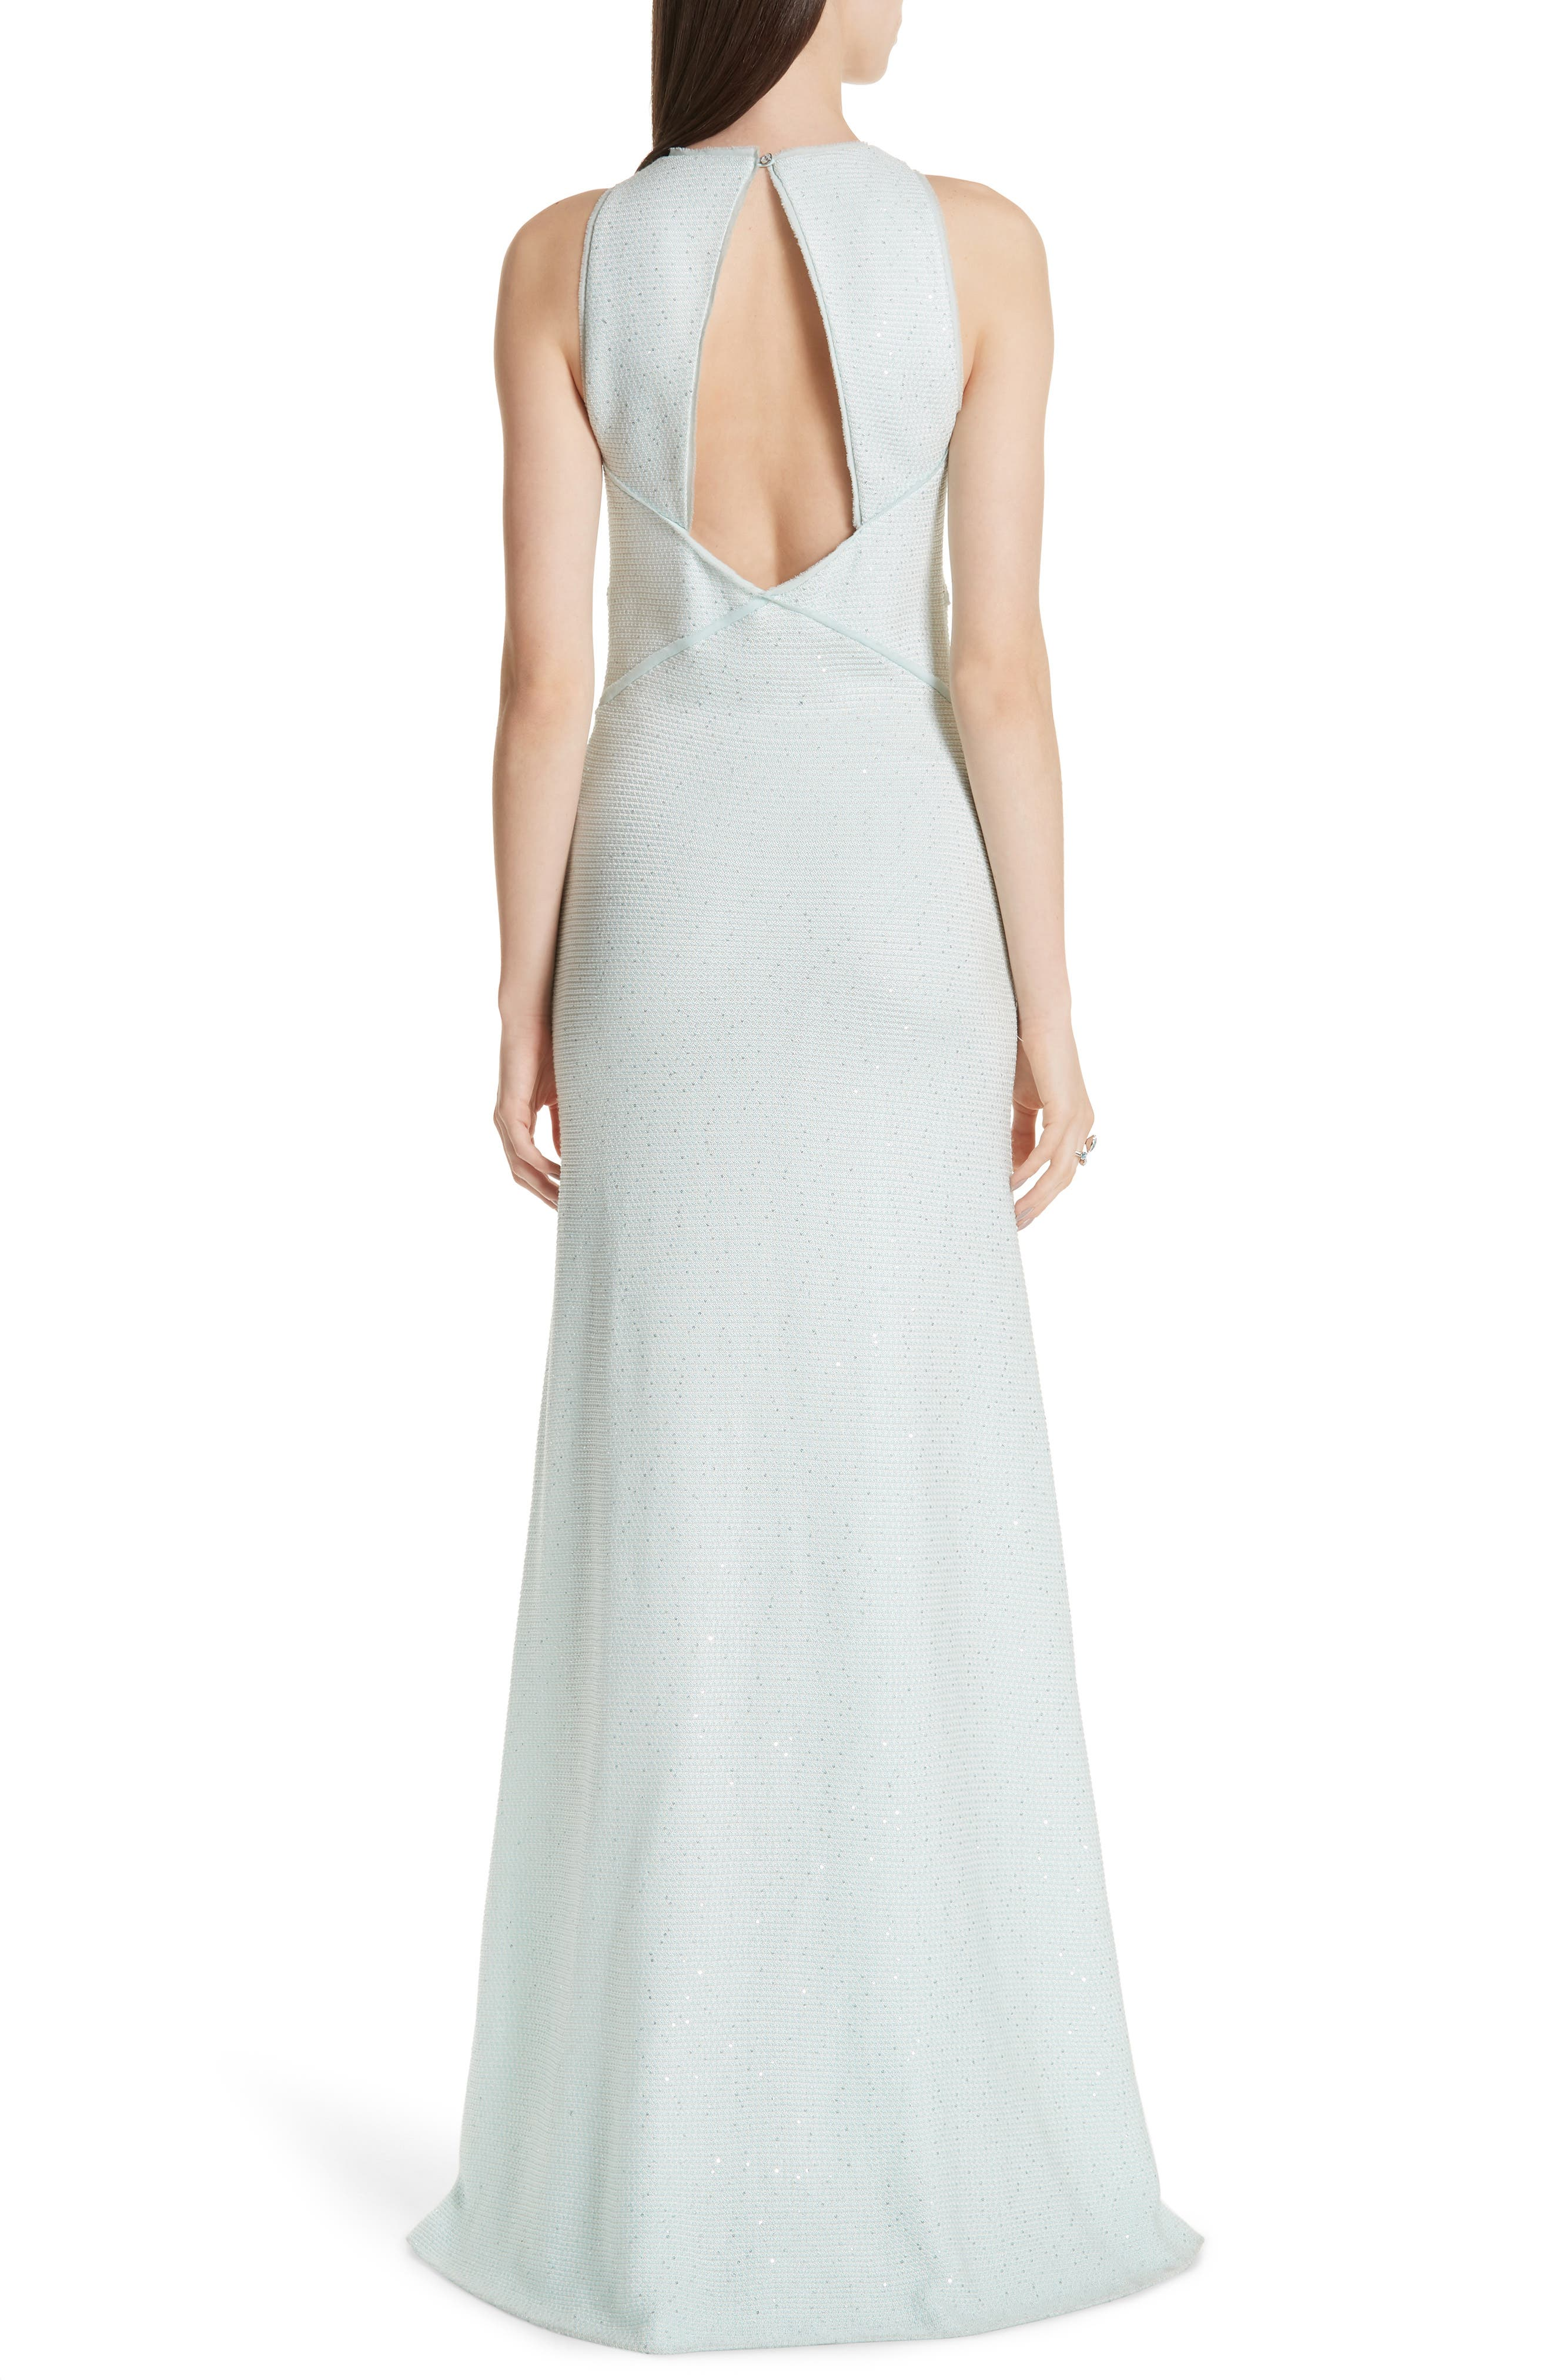 ST. JOHN COLLECTION, Links Sequin Knit Gown, Alternate thumbnail 2, color, OPAL